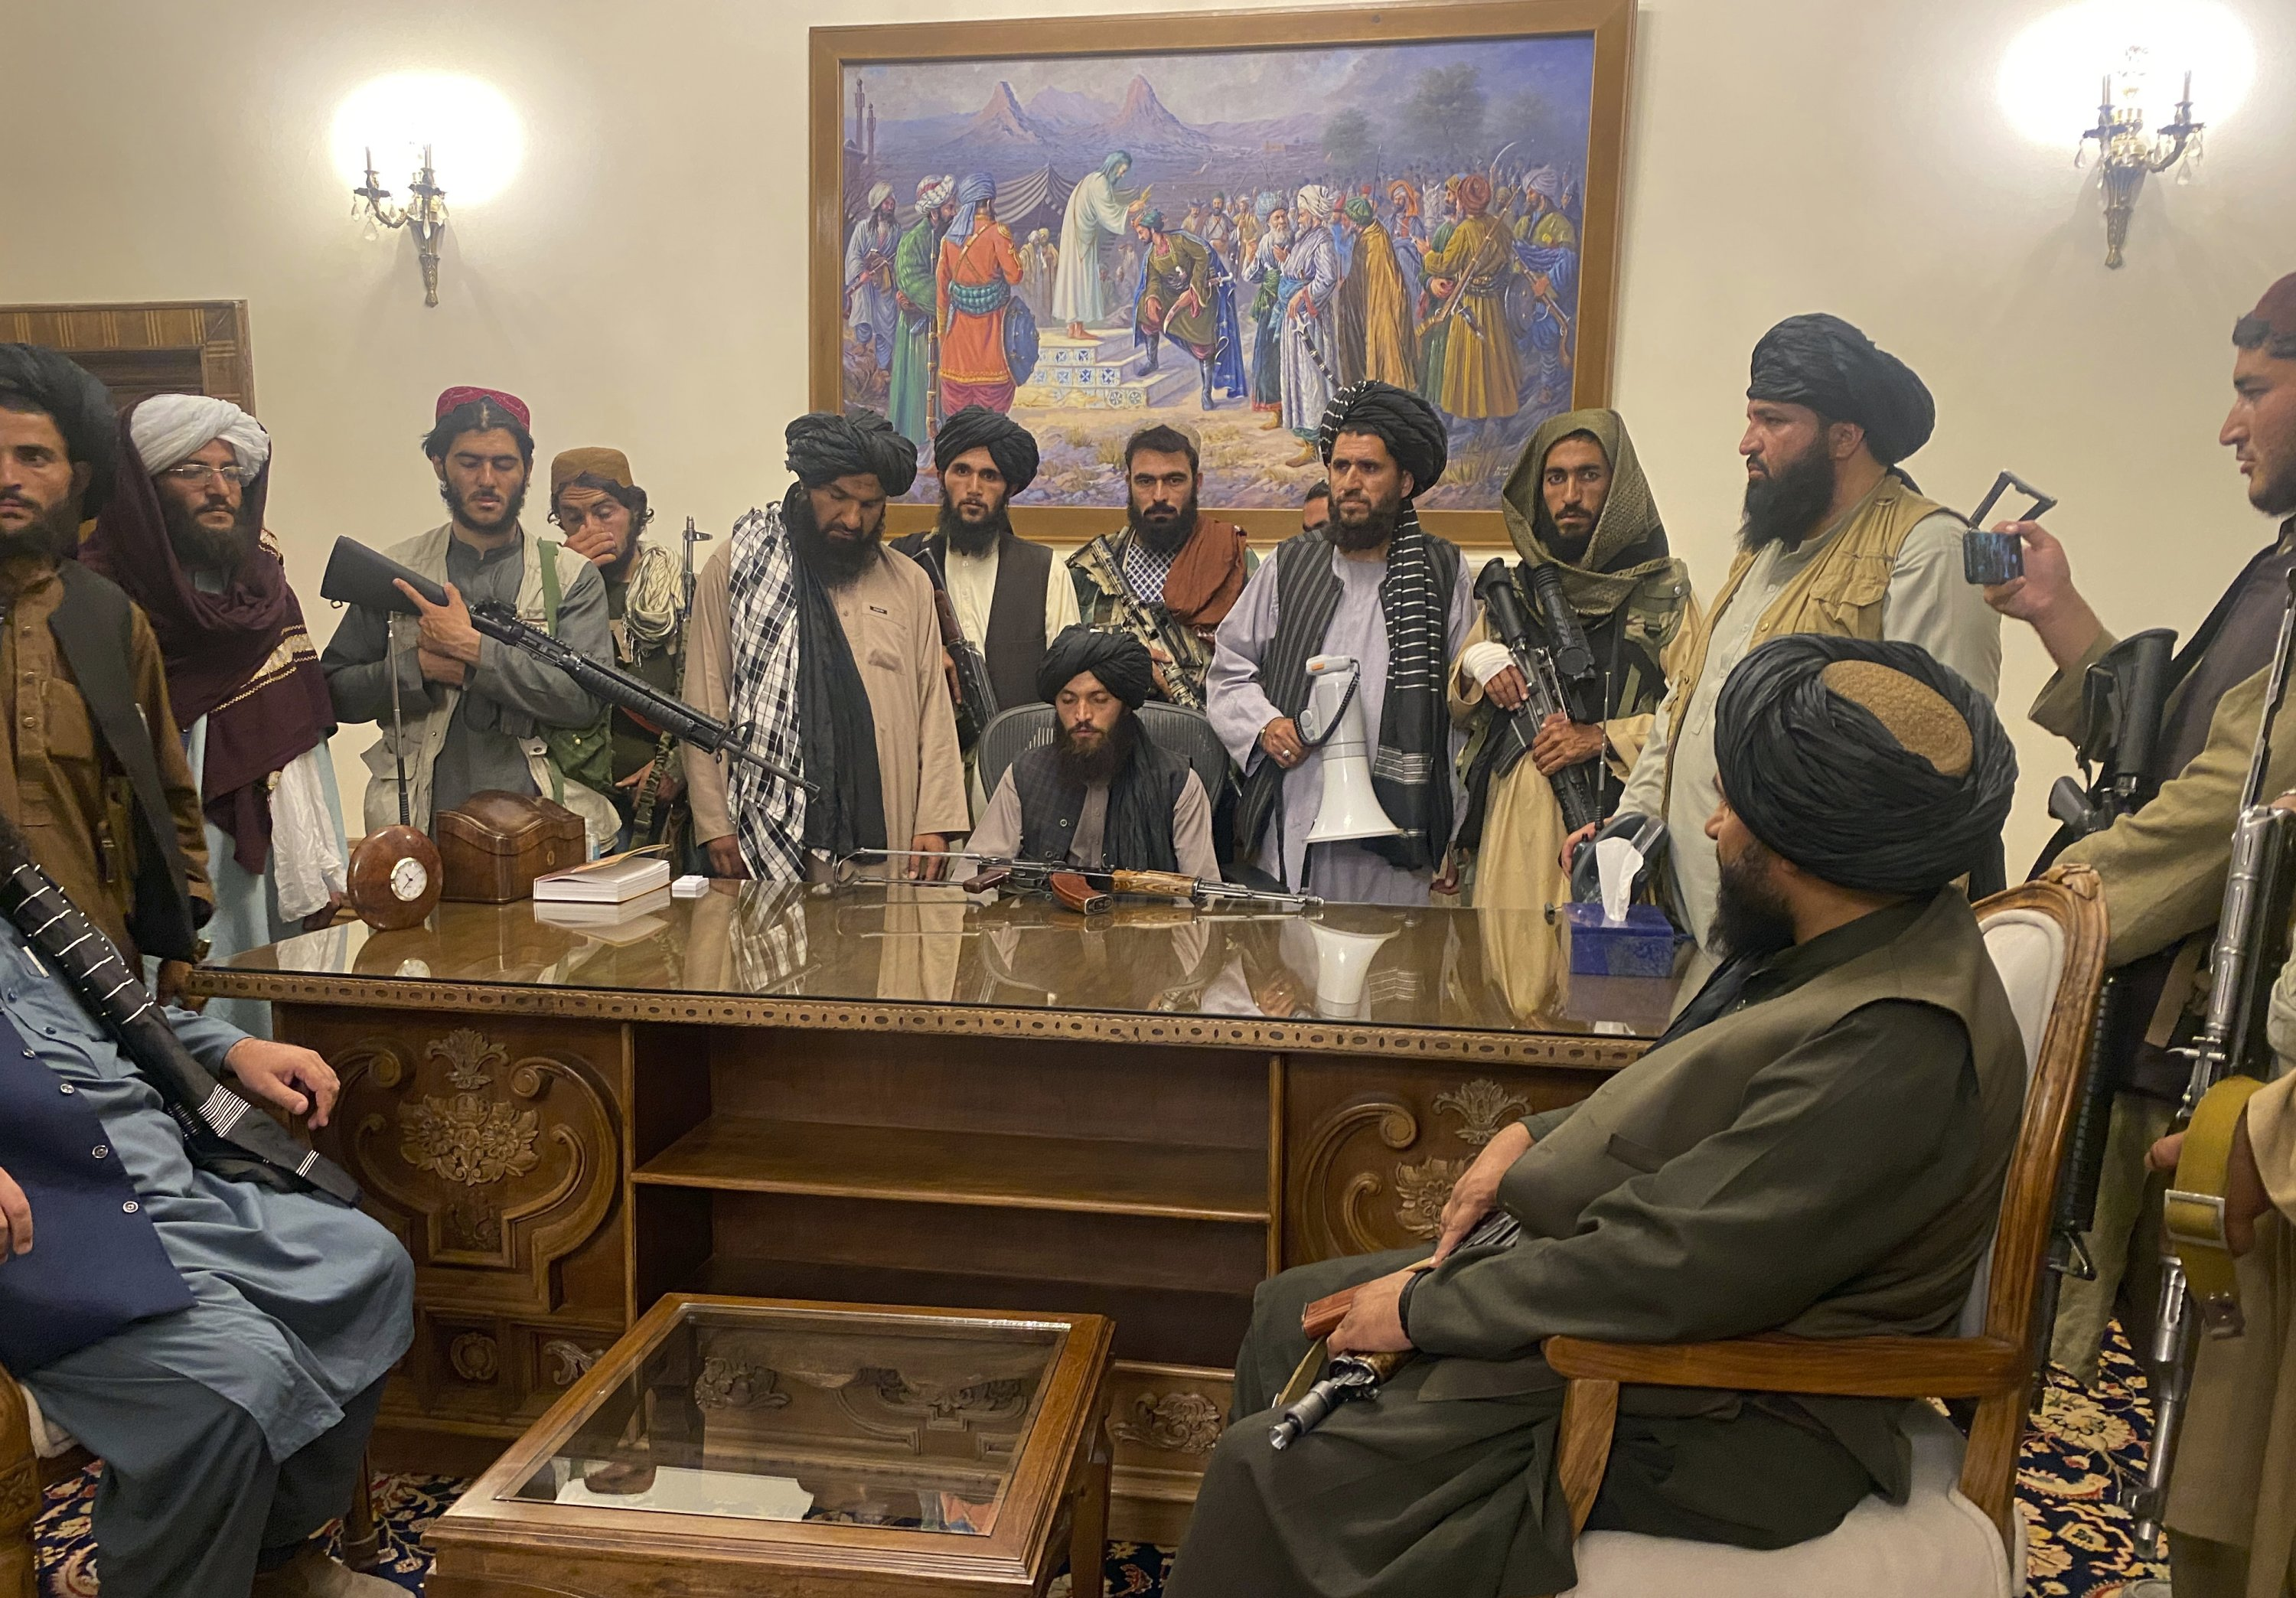 Taliban fighters take control of the Afghan presidential palace after President Ashraf Ghani fled the country, in Kabul, Afghanistan, Aug. 15, 2021. (AP Photo)